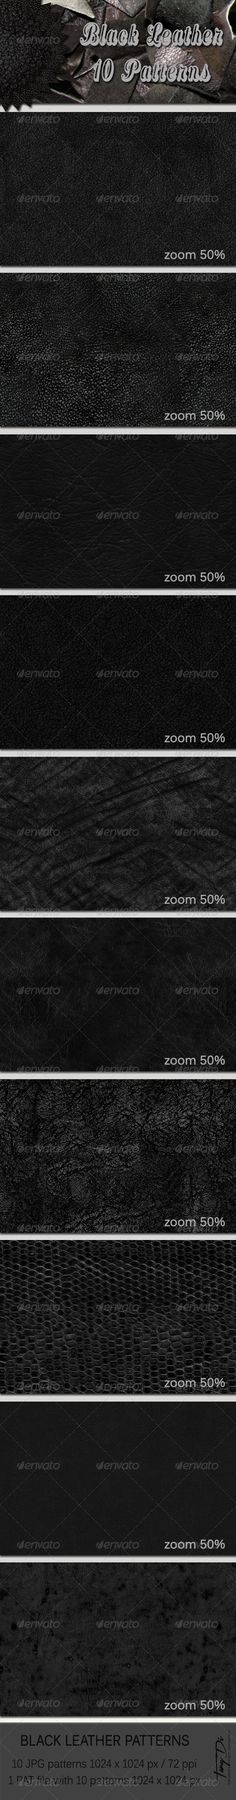 http://graphicriver.net/item/10-black-leather-patterns/6208776?ref=TanyDi2